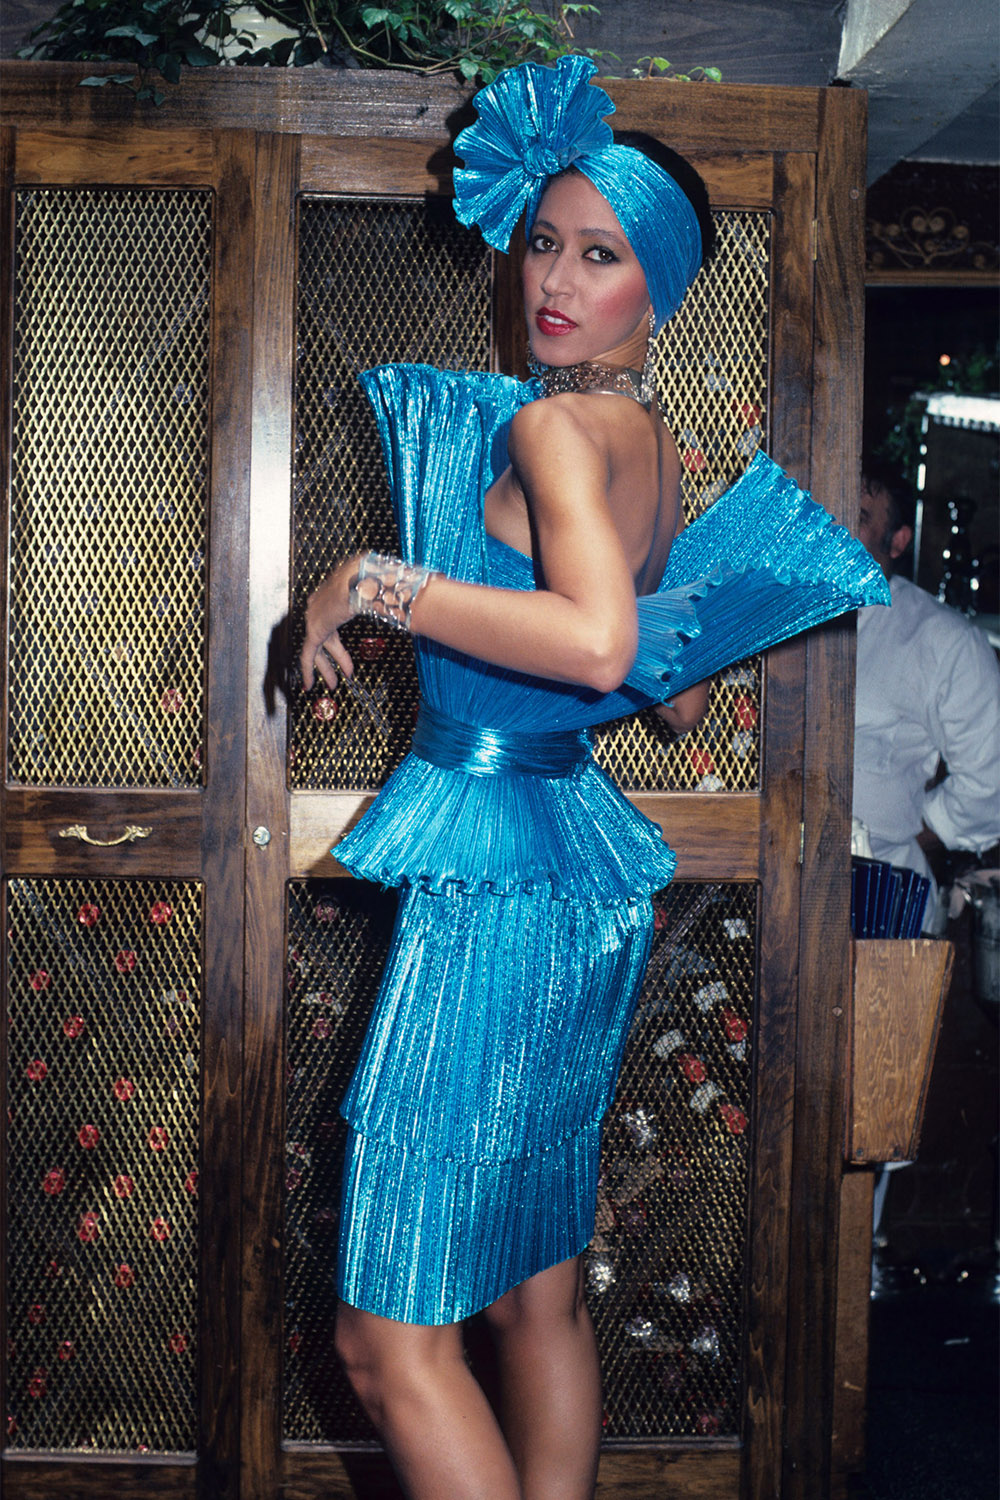 80s Fashion Trends 35 Iconic Looks From The Eighties: Vintage 80s Fashion Photos